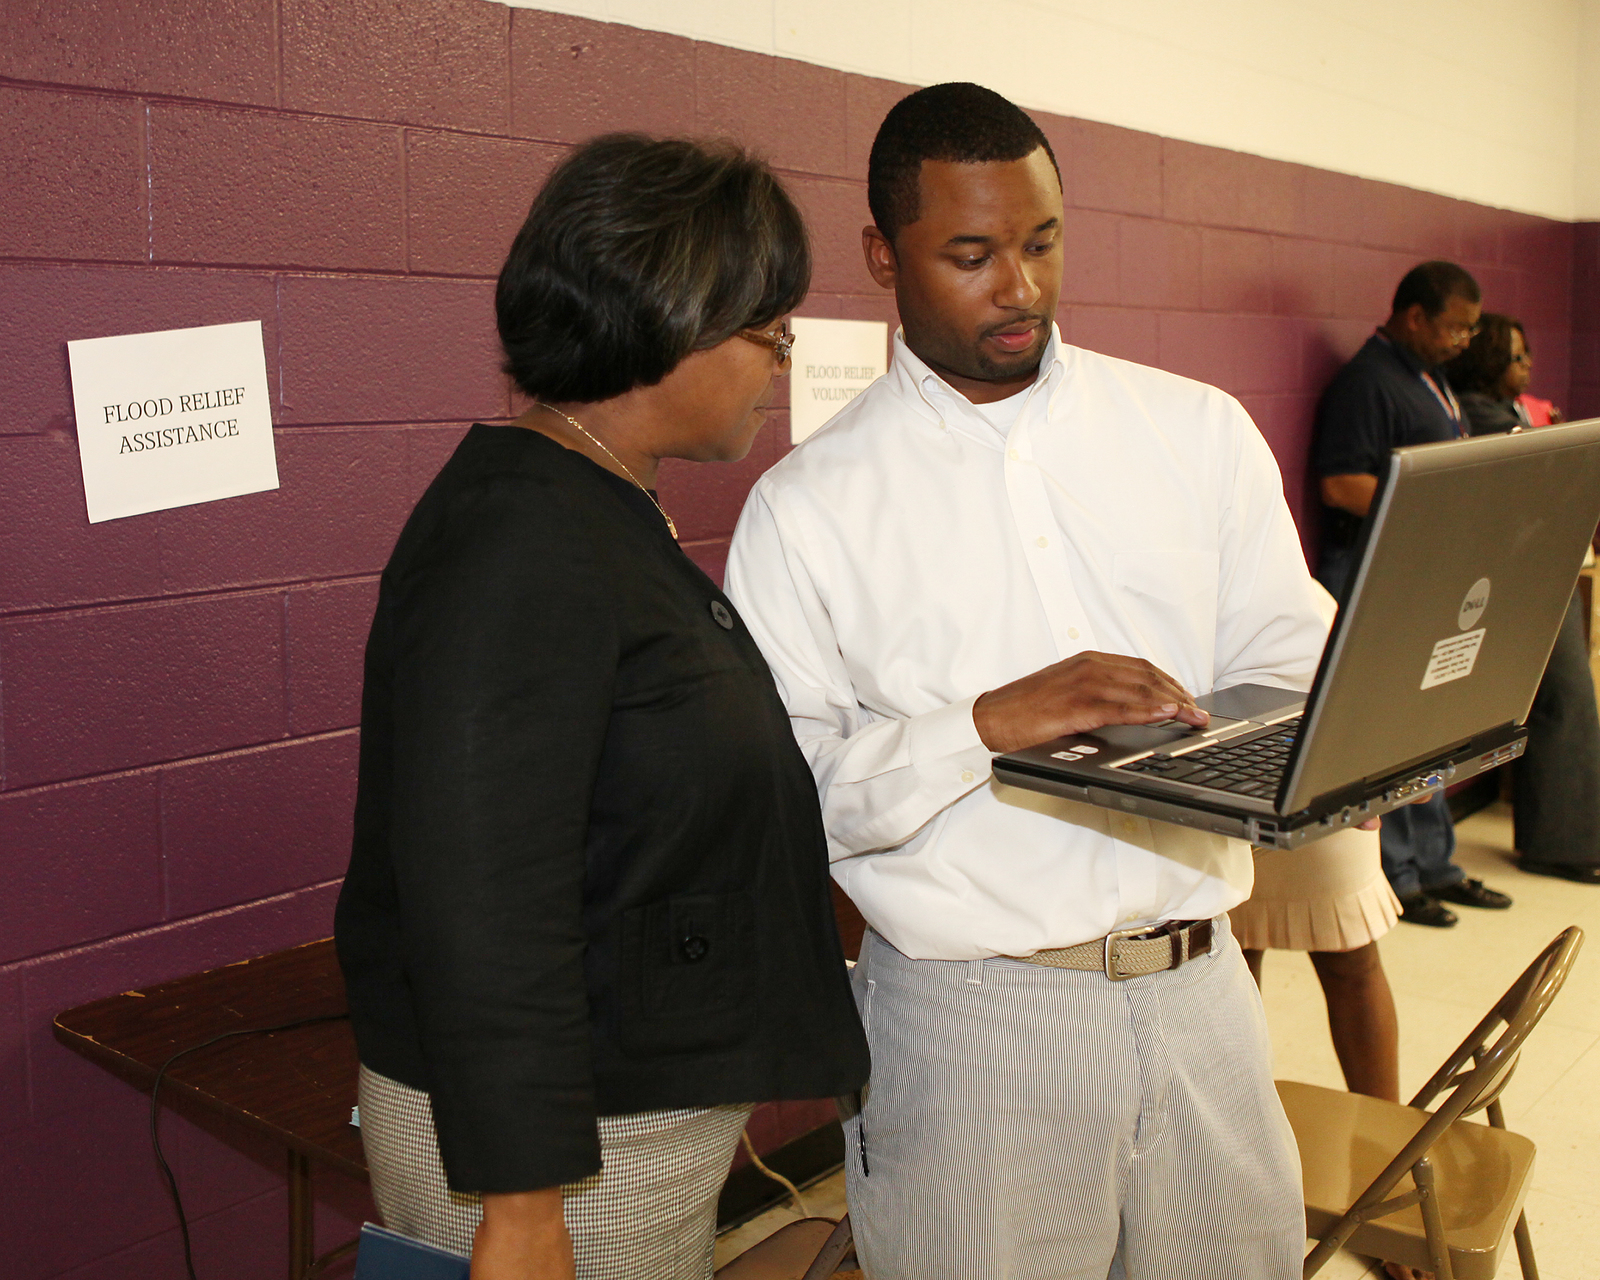 Flooding ^ Severe Storm - Bordeaux, Tenn. , May 11, 2010 -- Councilman-at-Large Jerry Maynard assists a Bordeaux resident with the FEMA disaster assistance website during a community meeting at the Temple Church of Christ.  FEMA is responding to the severe storms and flooding that damaged or destroyed many homes and businesses across Tennessee.  David Fine/FEMA